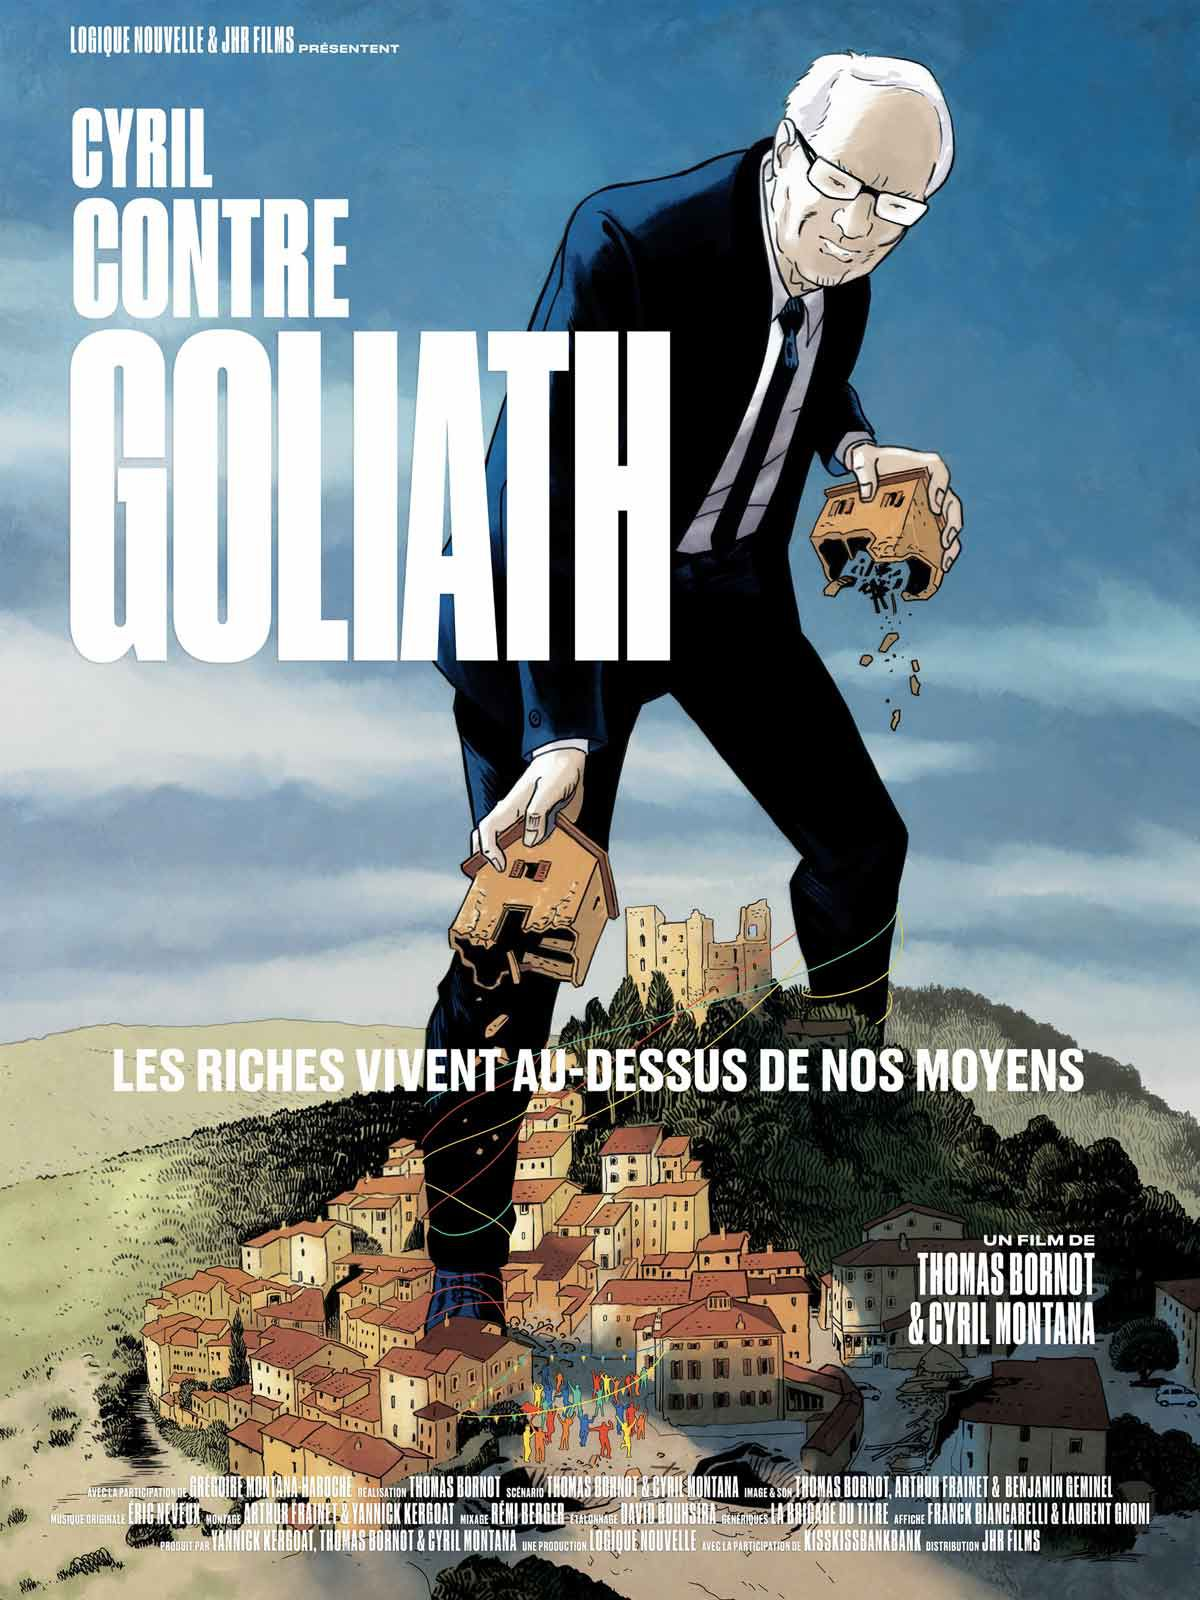 Cyril contre Goliath - Documentaire (2020) streaming VF gratuit complet